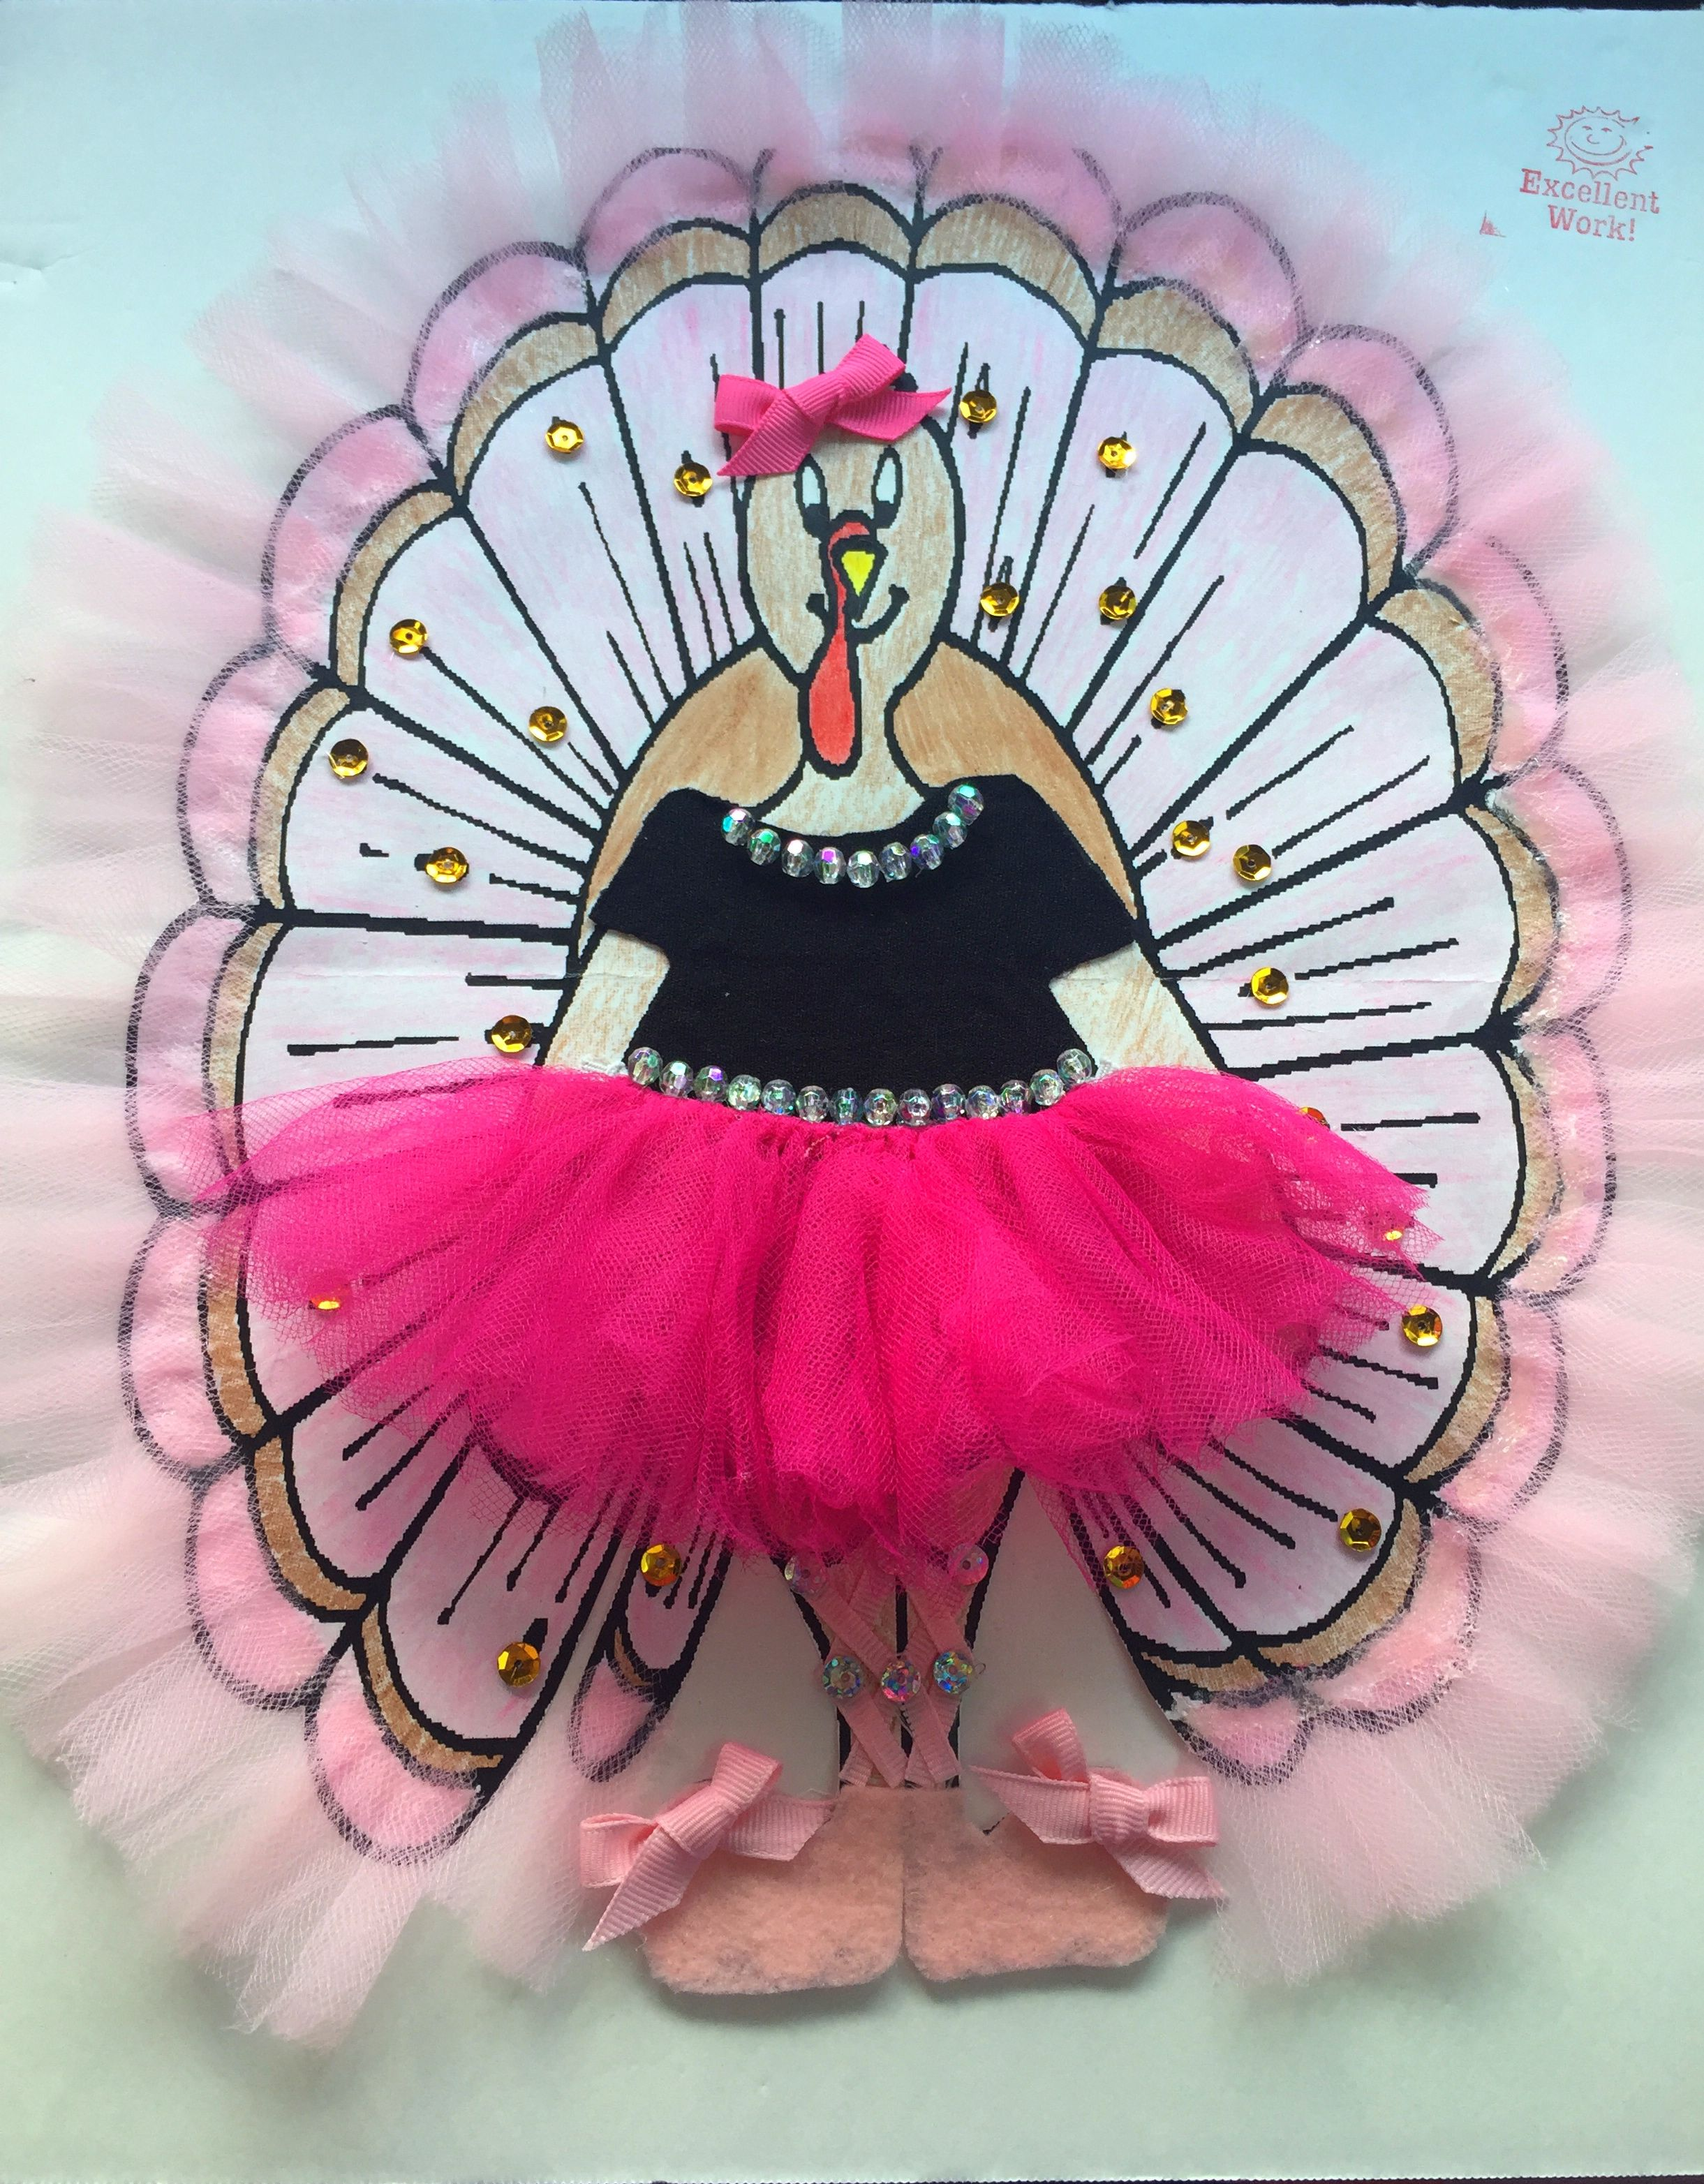 Ballerina Turkey Disguise Project Turkey Disguise Project